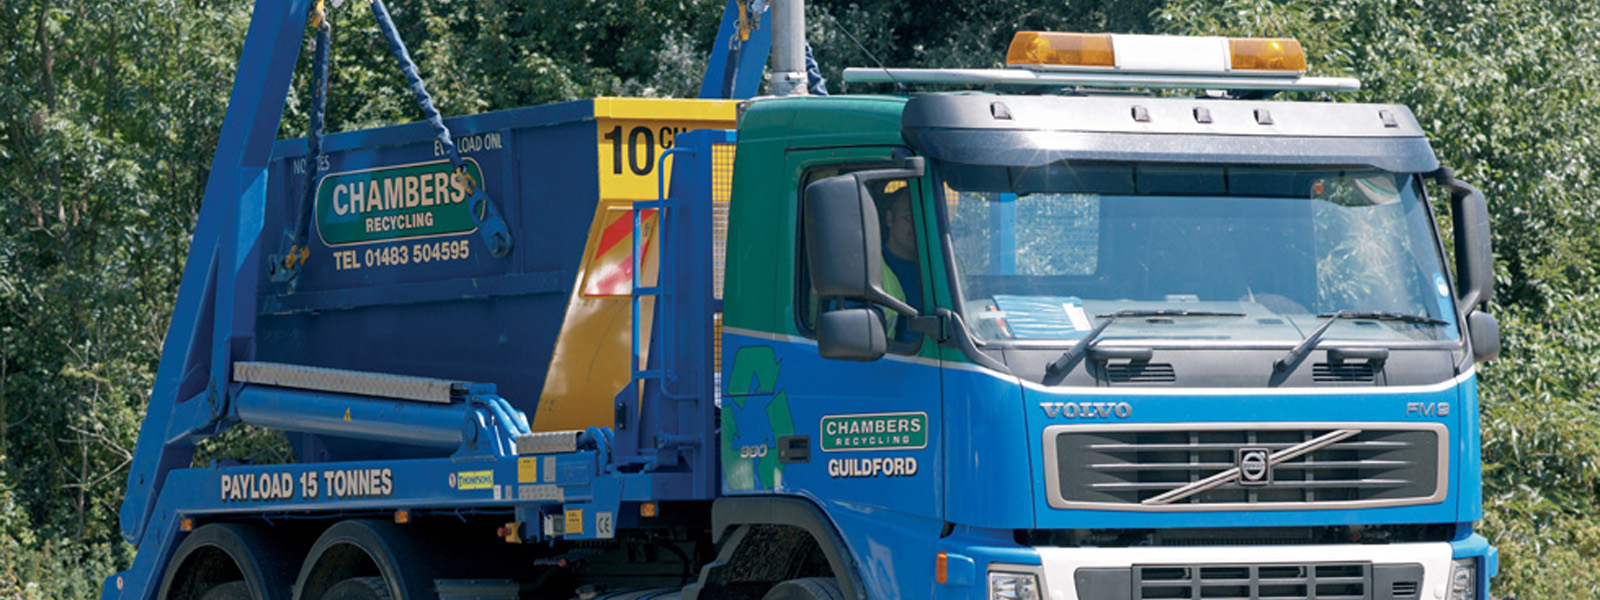 Chambers lorry with skip on the back